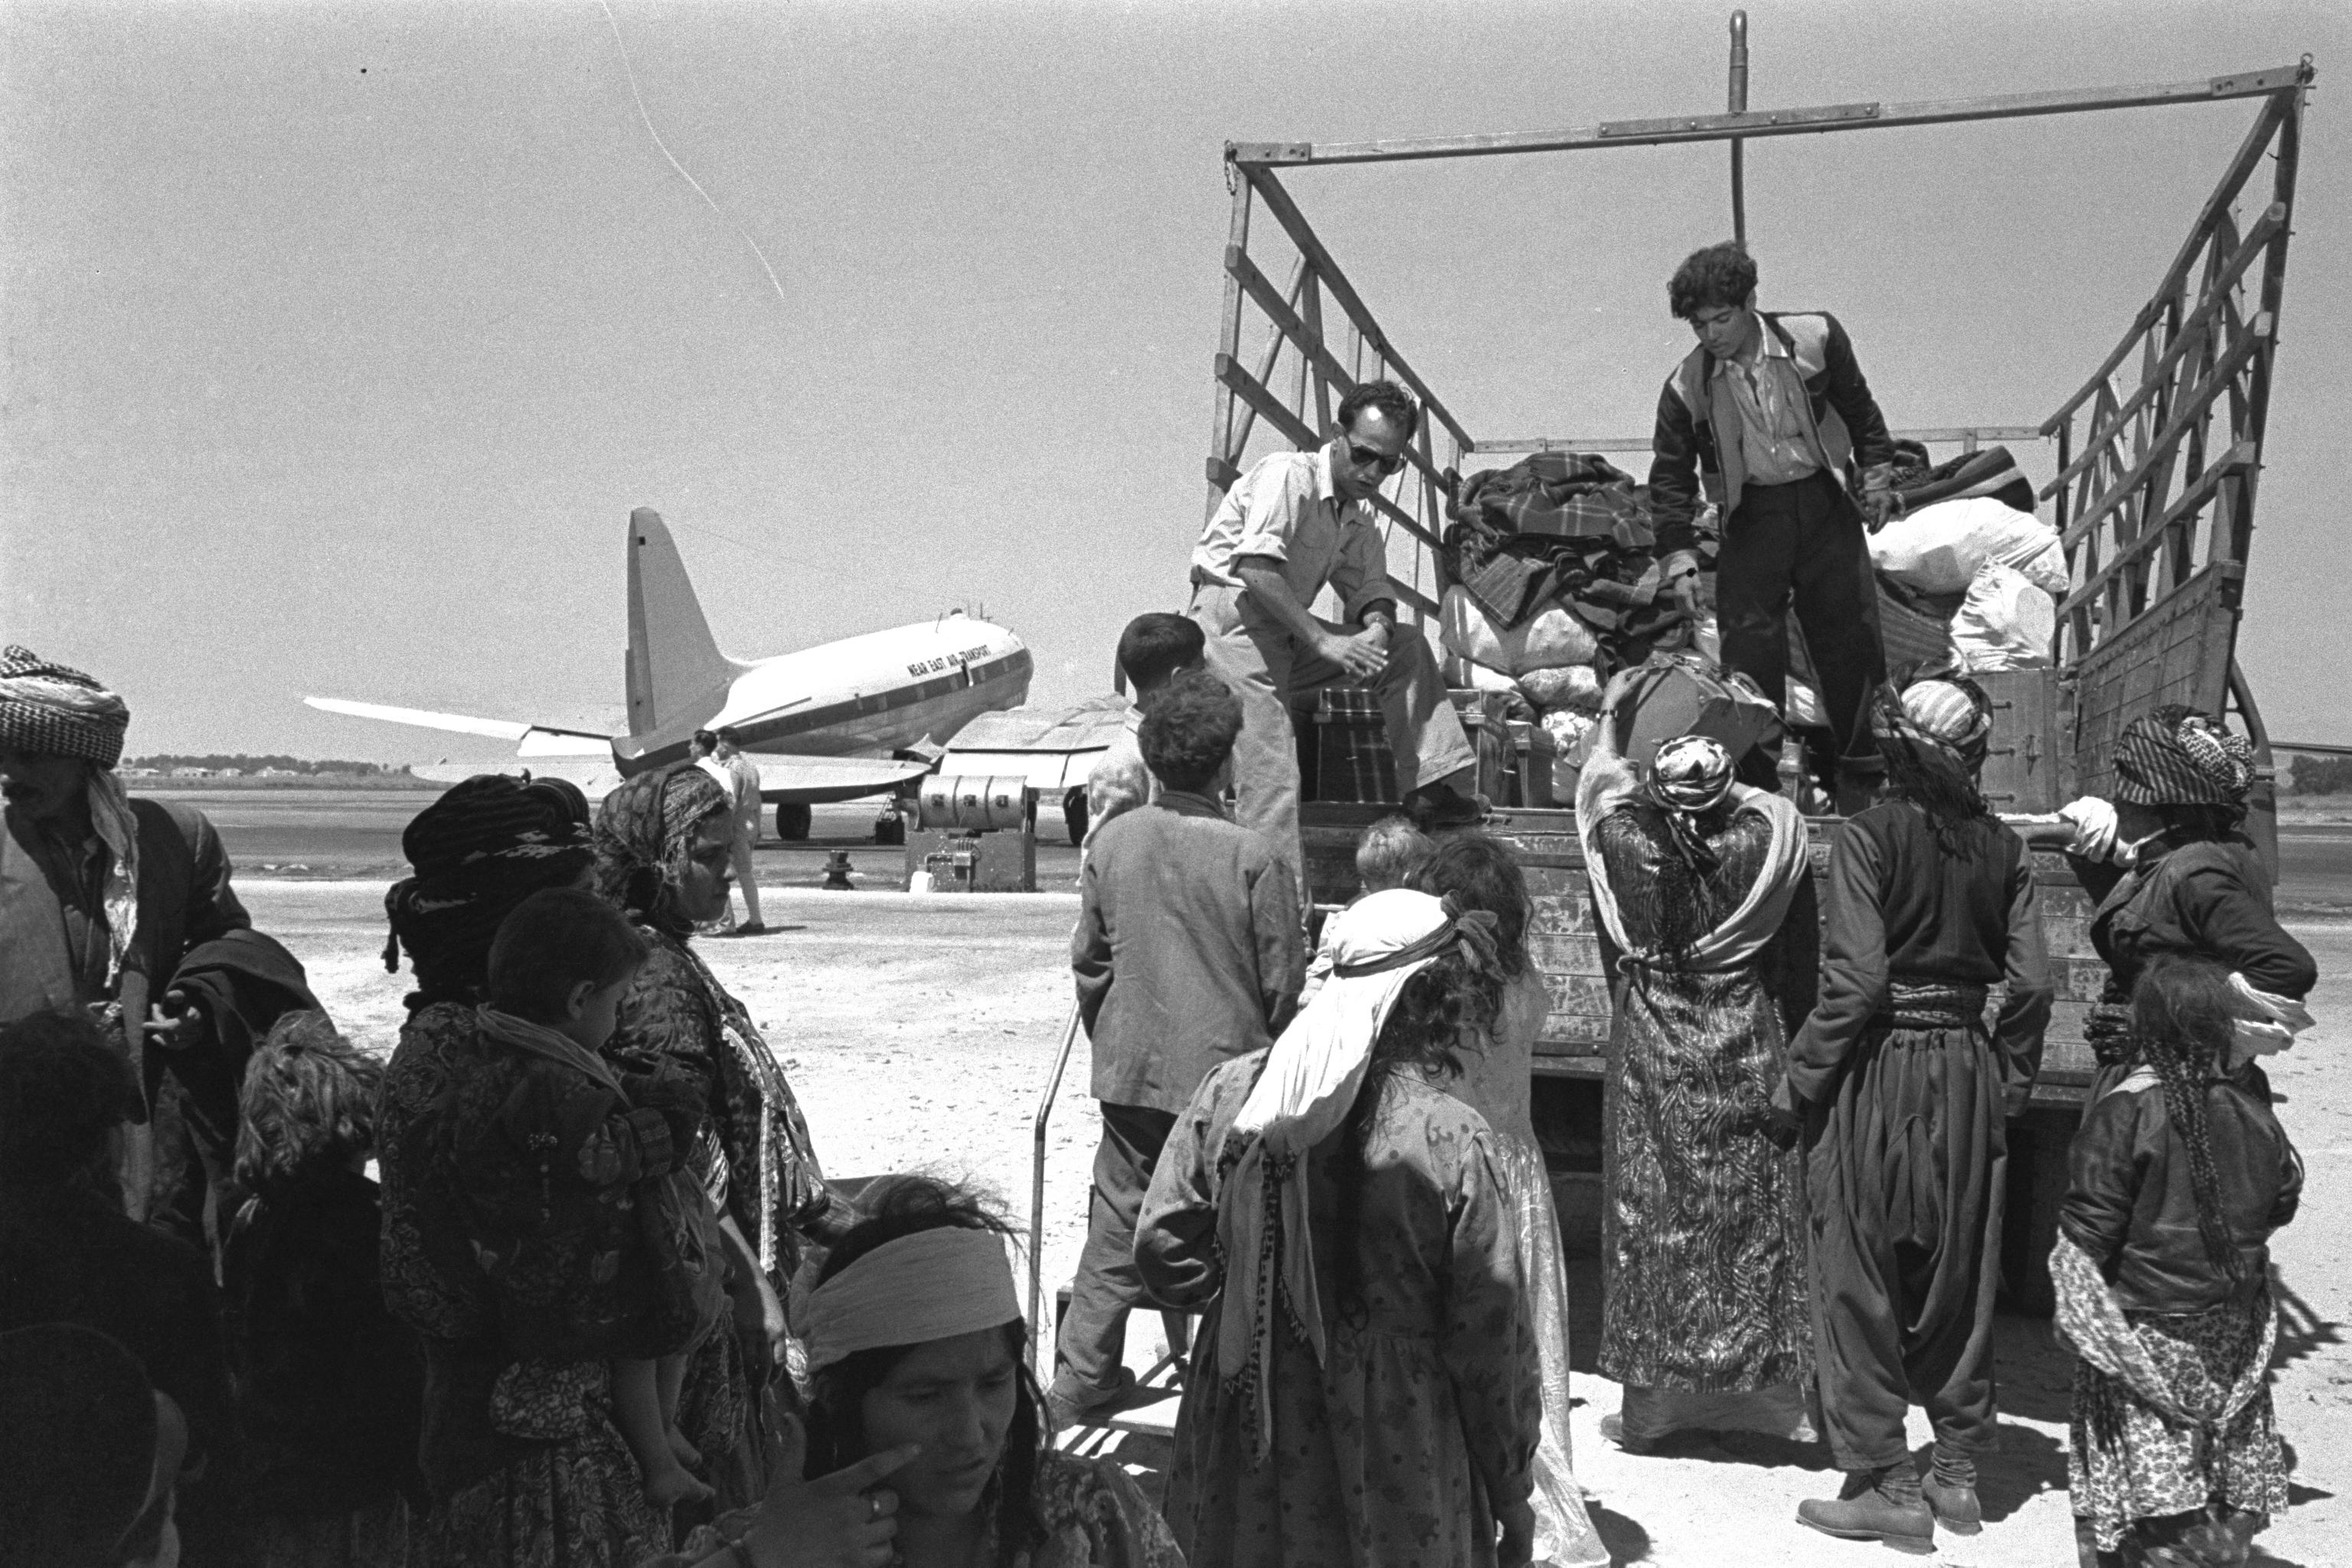 File:Immigrants 1951.jpg